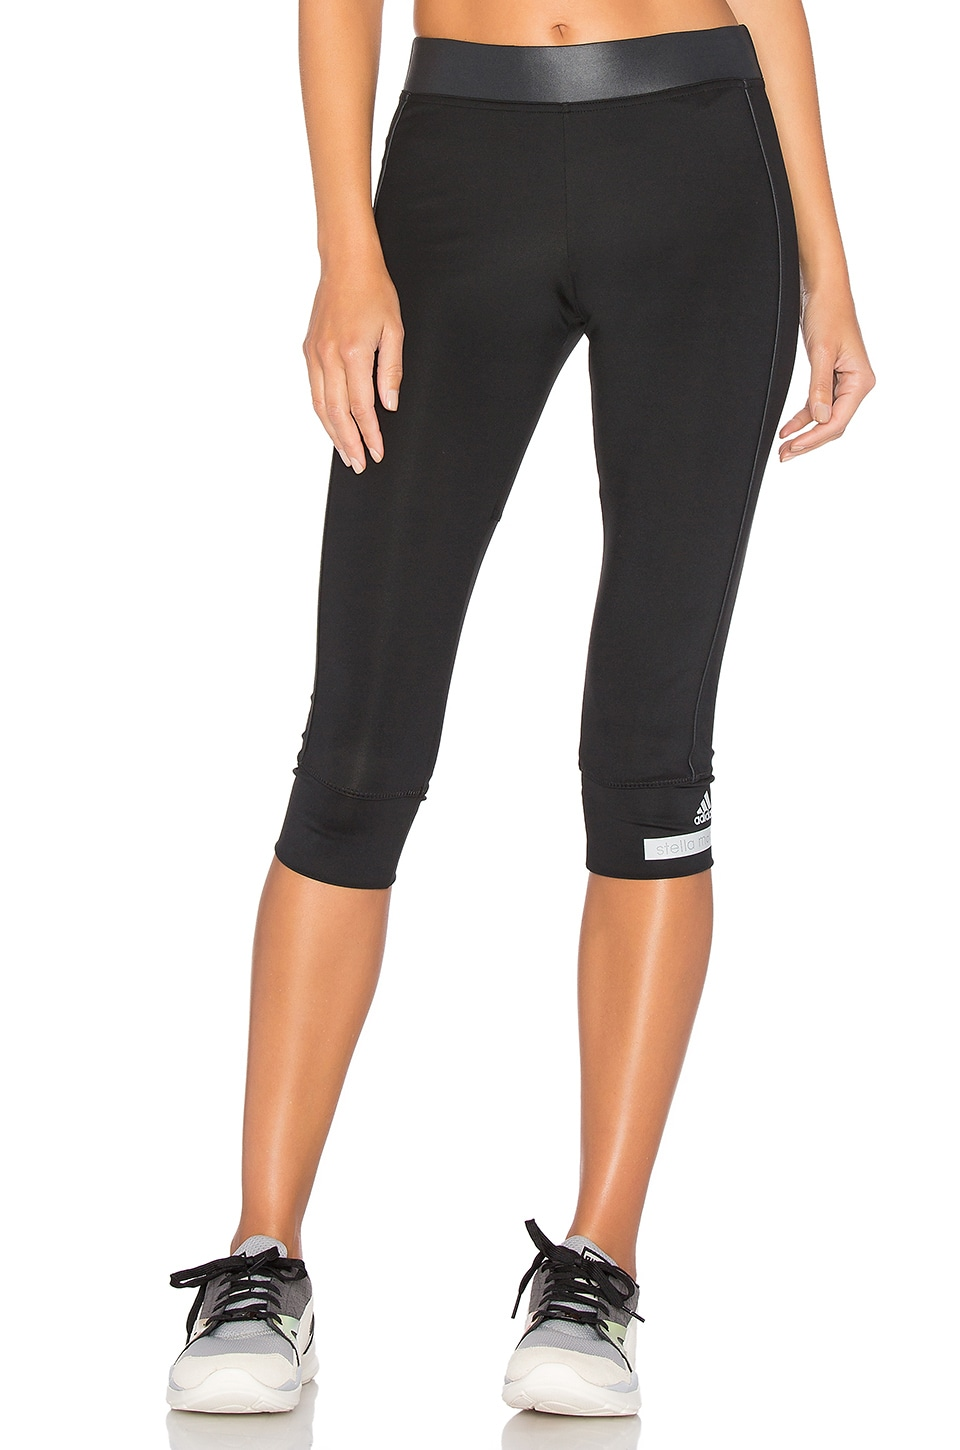 adidas by Stella McCartney The Performance 3/4 Tight in Black